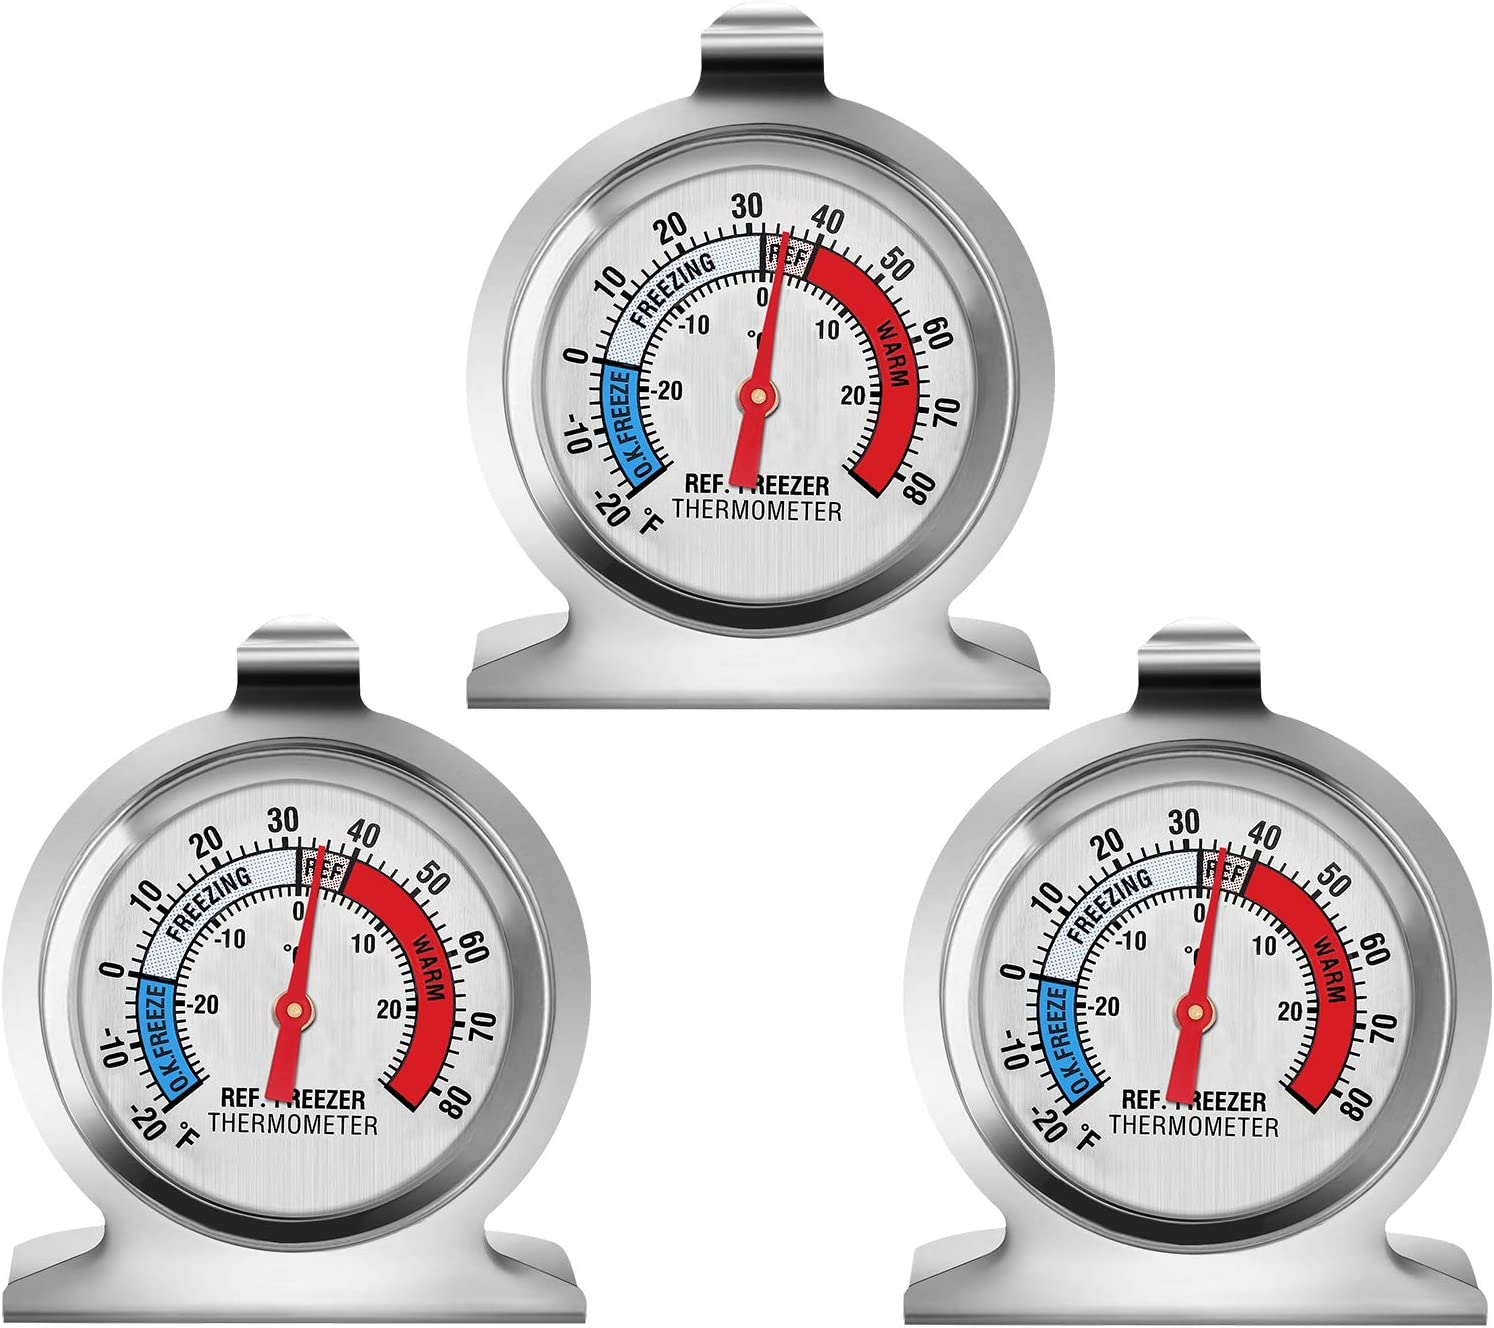 EEEKit Refrigerator Thermometer, Classic Series Large Dial Freezer Thermometer Temperature Thermometer for Refrigerator Freezer Fridge Cooler (3-Pack)